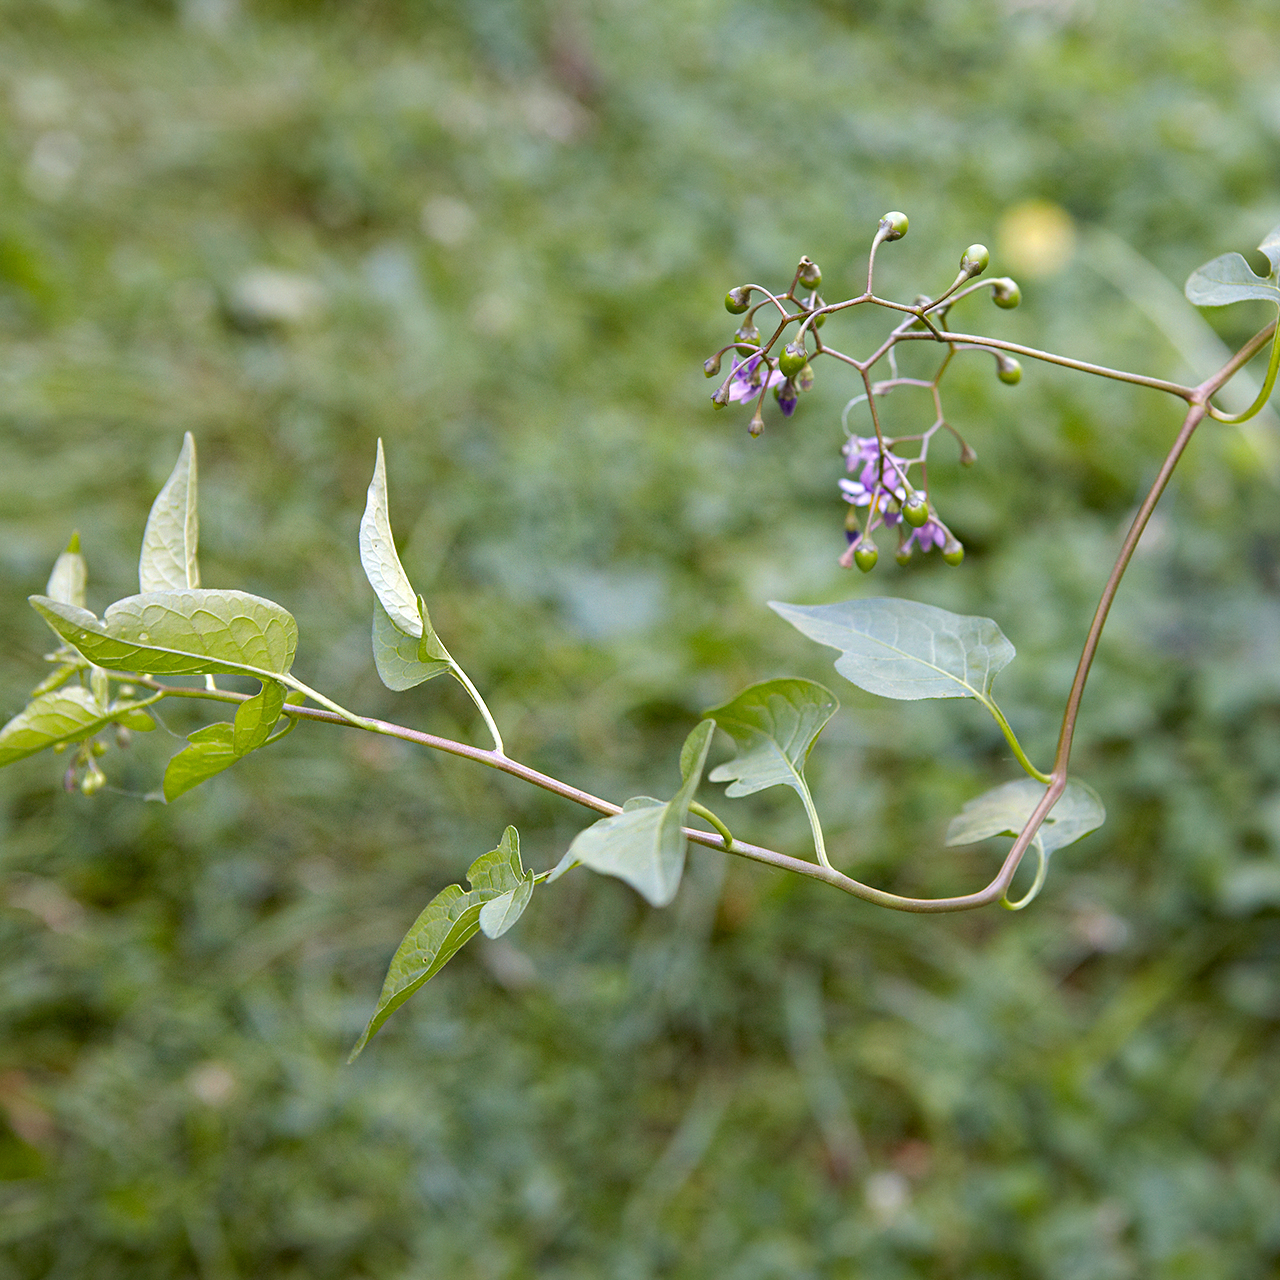 detail of black nightshade broadleaf weed